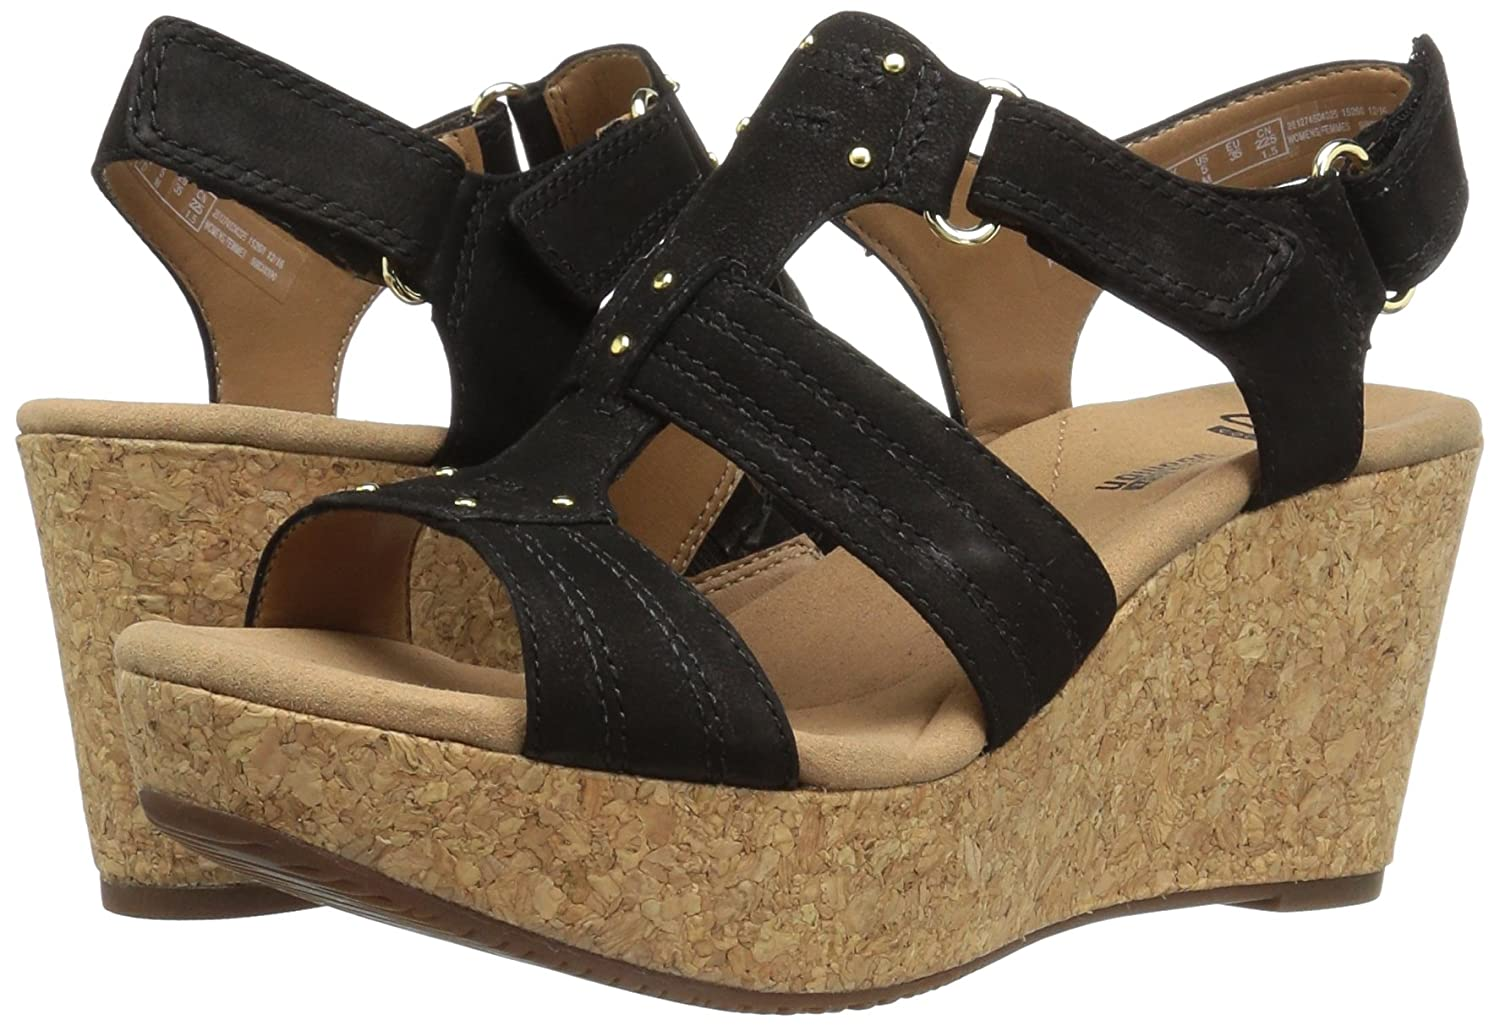 bc67f2f3c23 CLARKS Womens Annadel Orchid Wedge Sandal